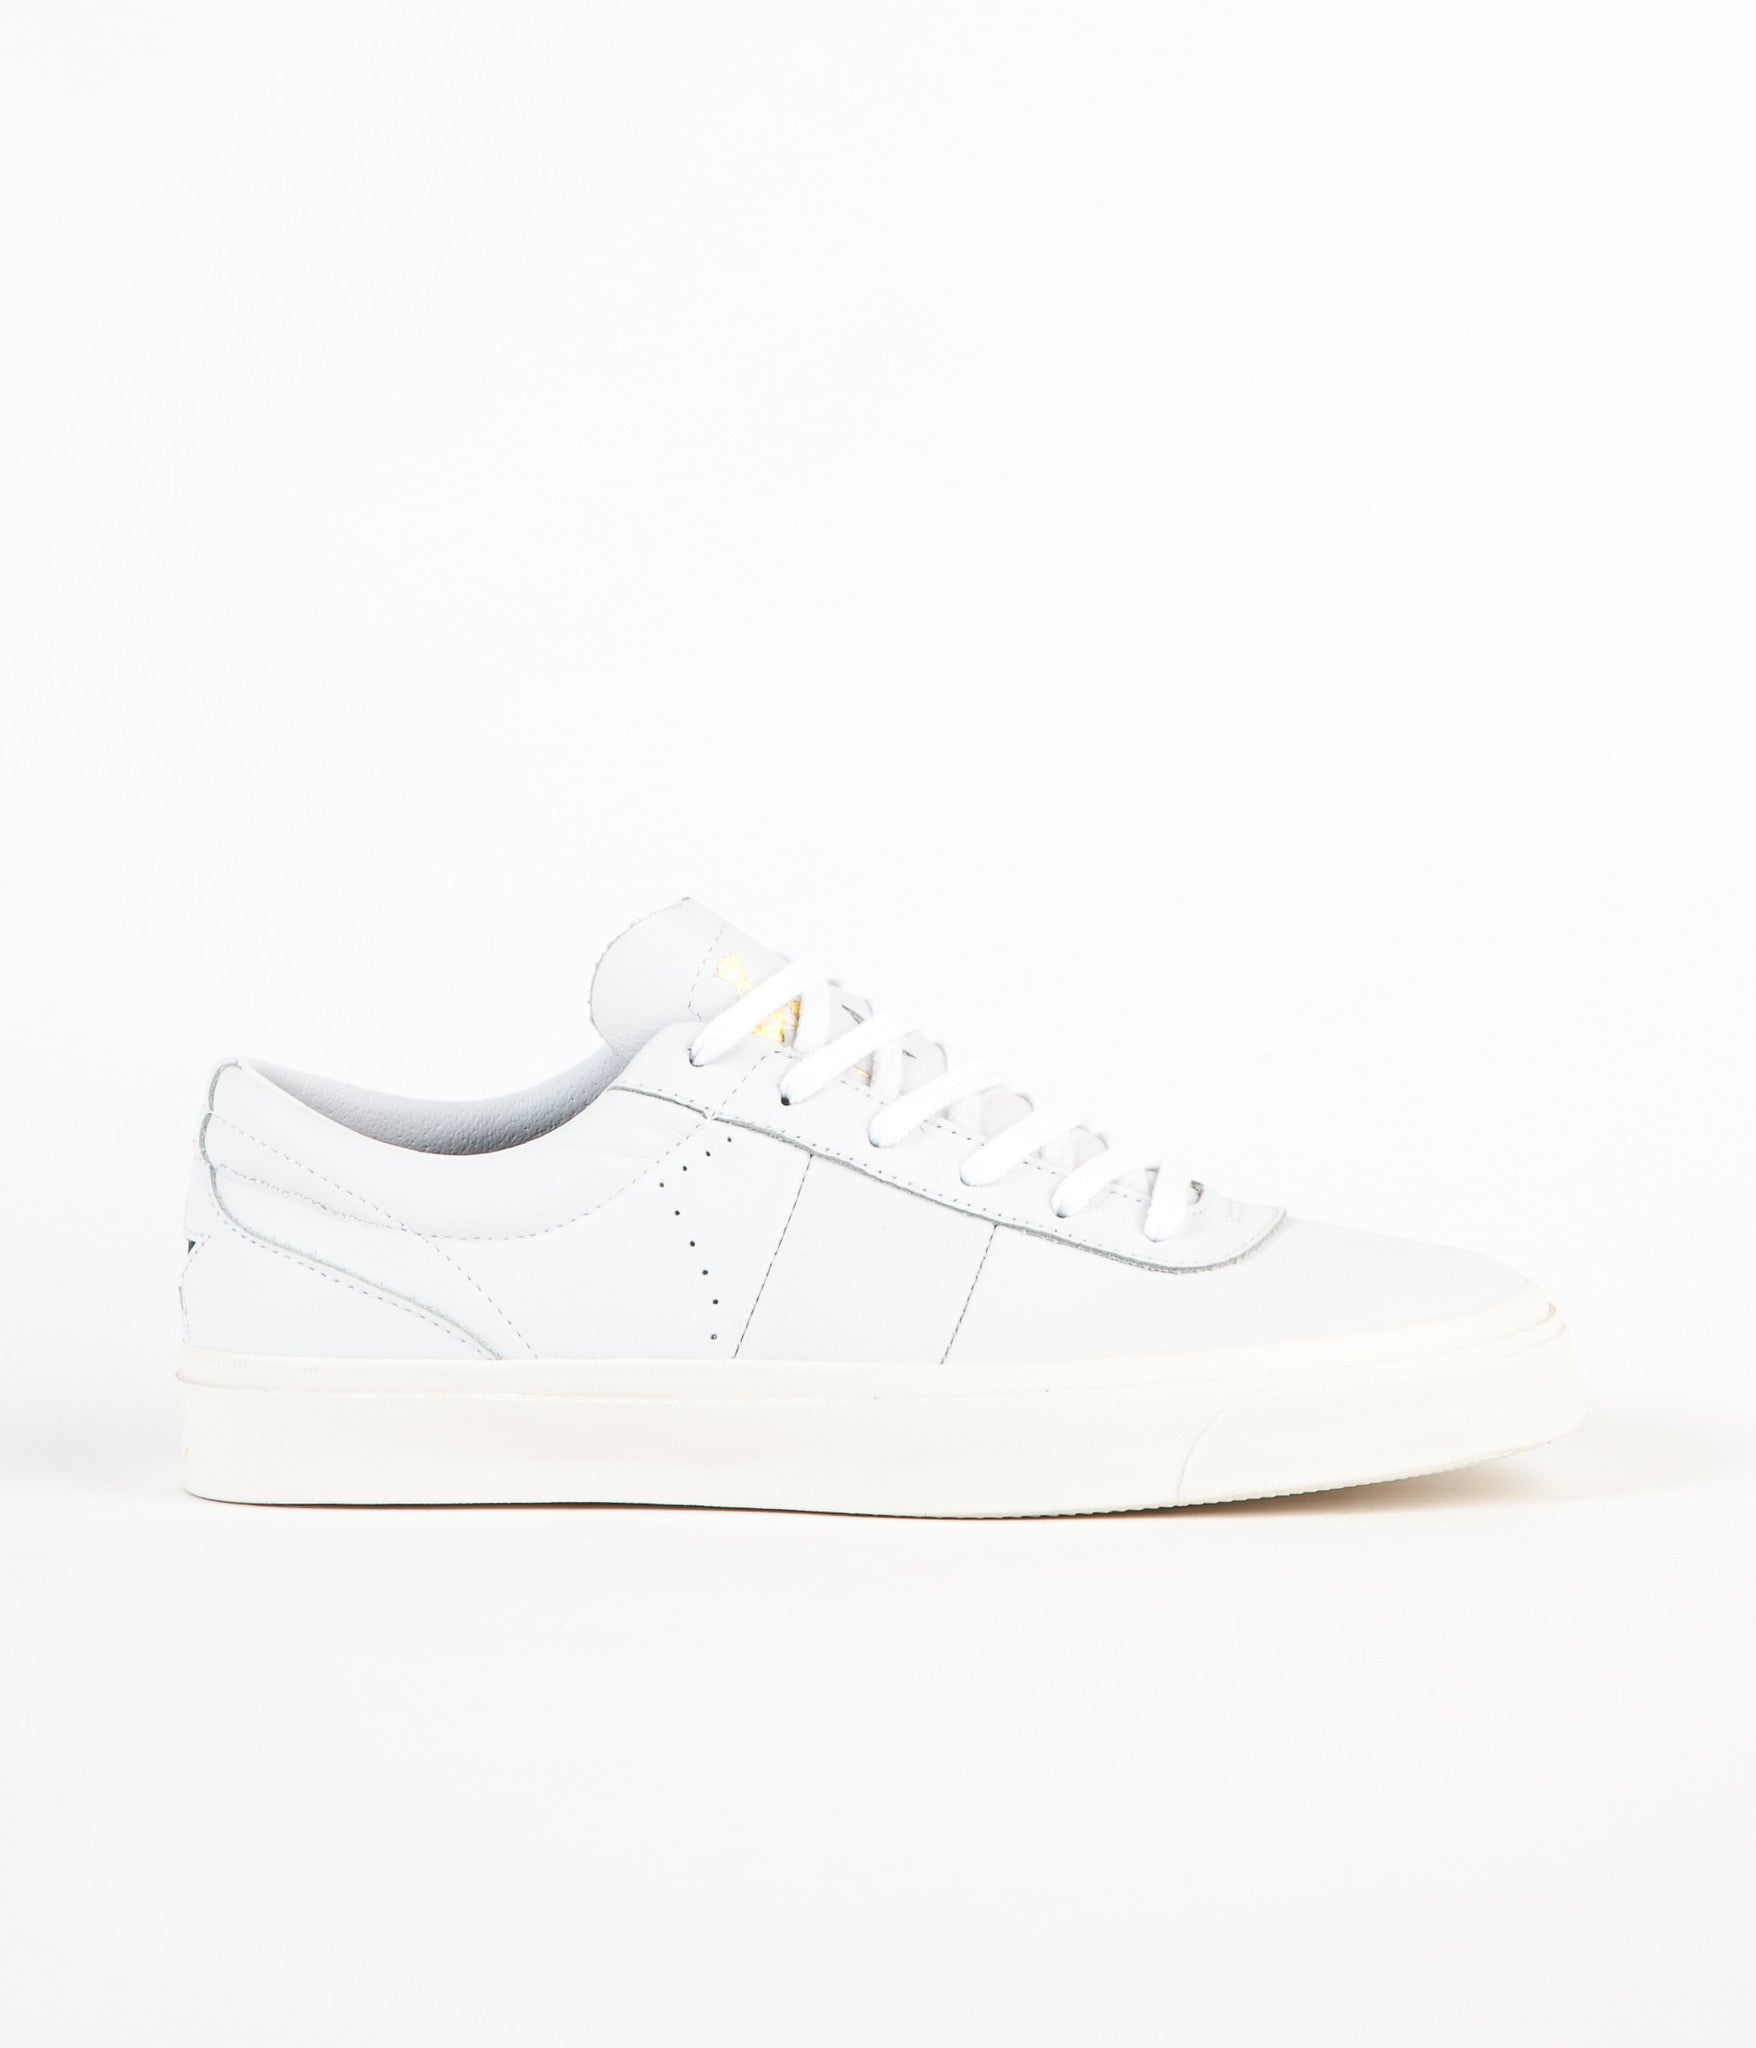 3579667c7150 Converse One Star Ox CC Sage Elsesser Shoes - White   White   Obsidian